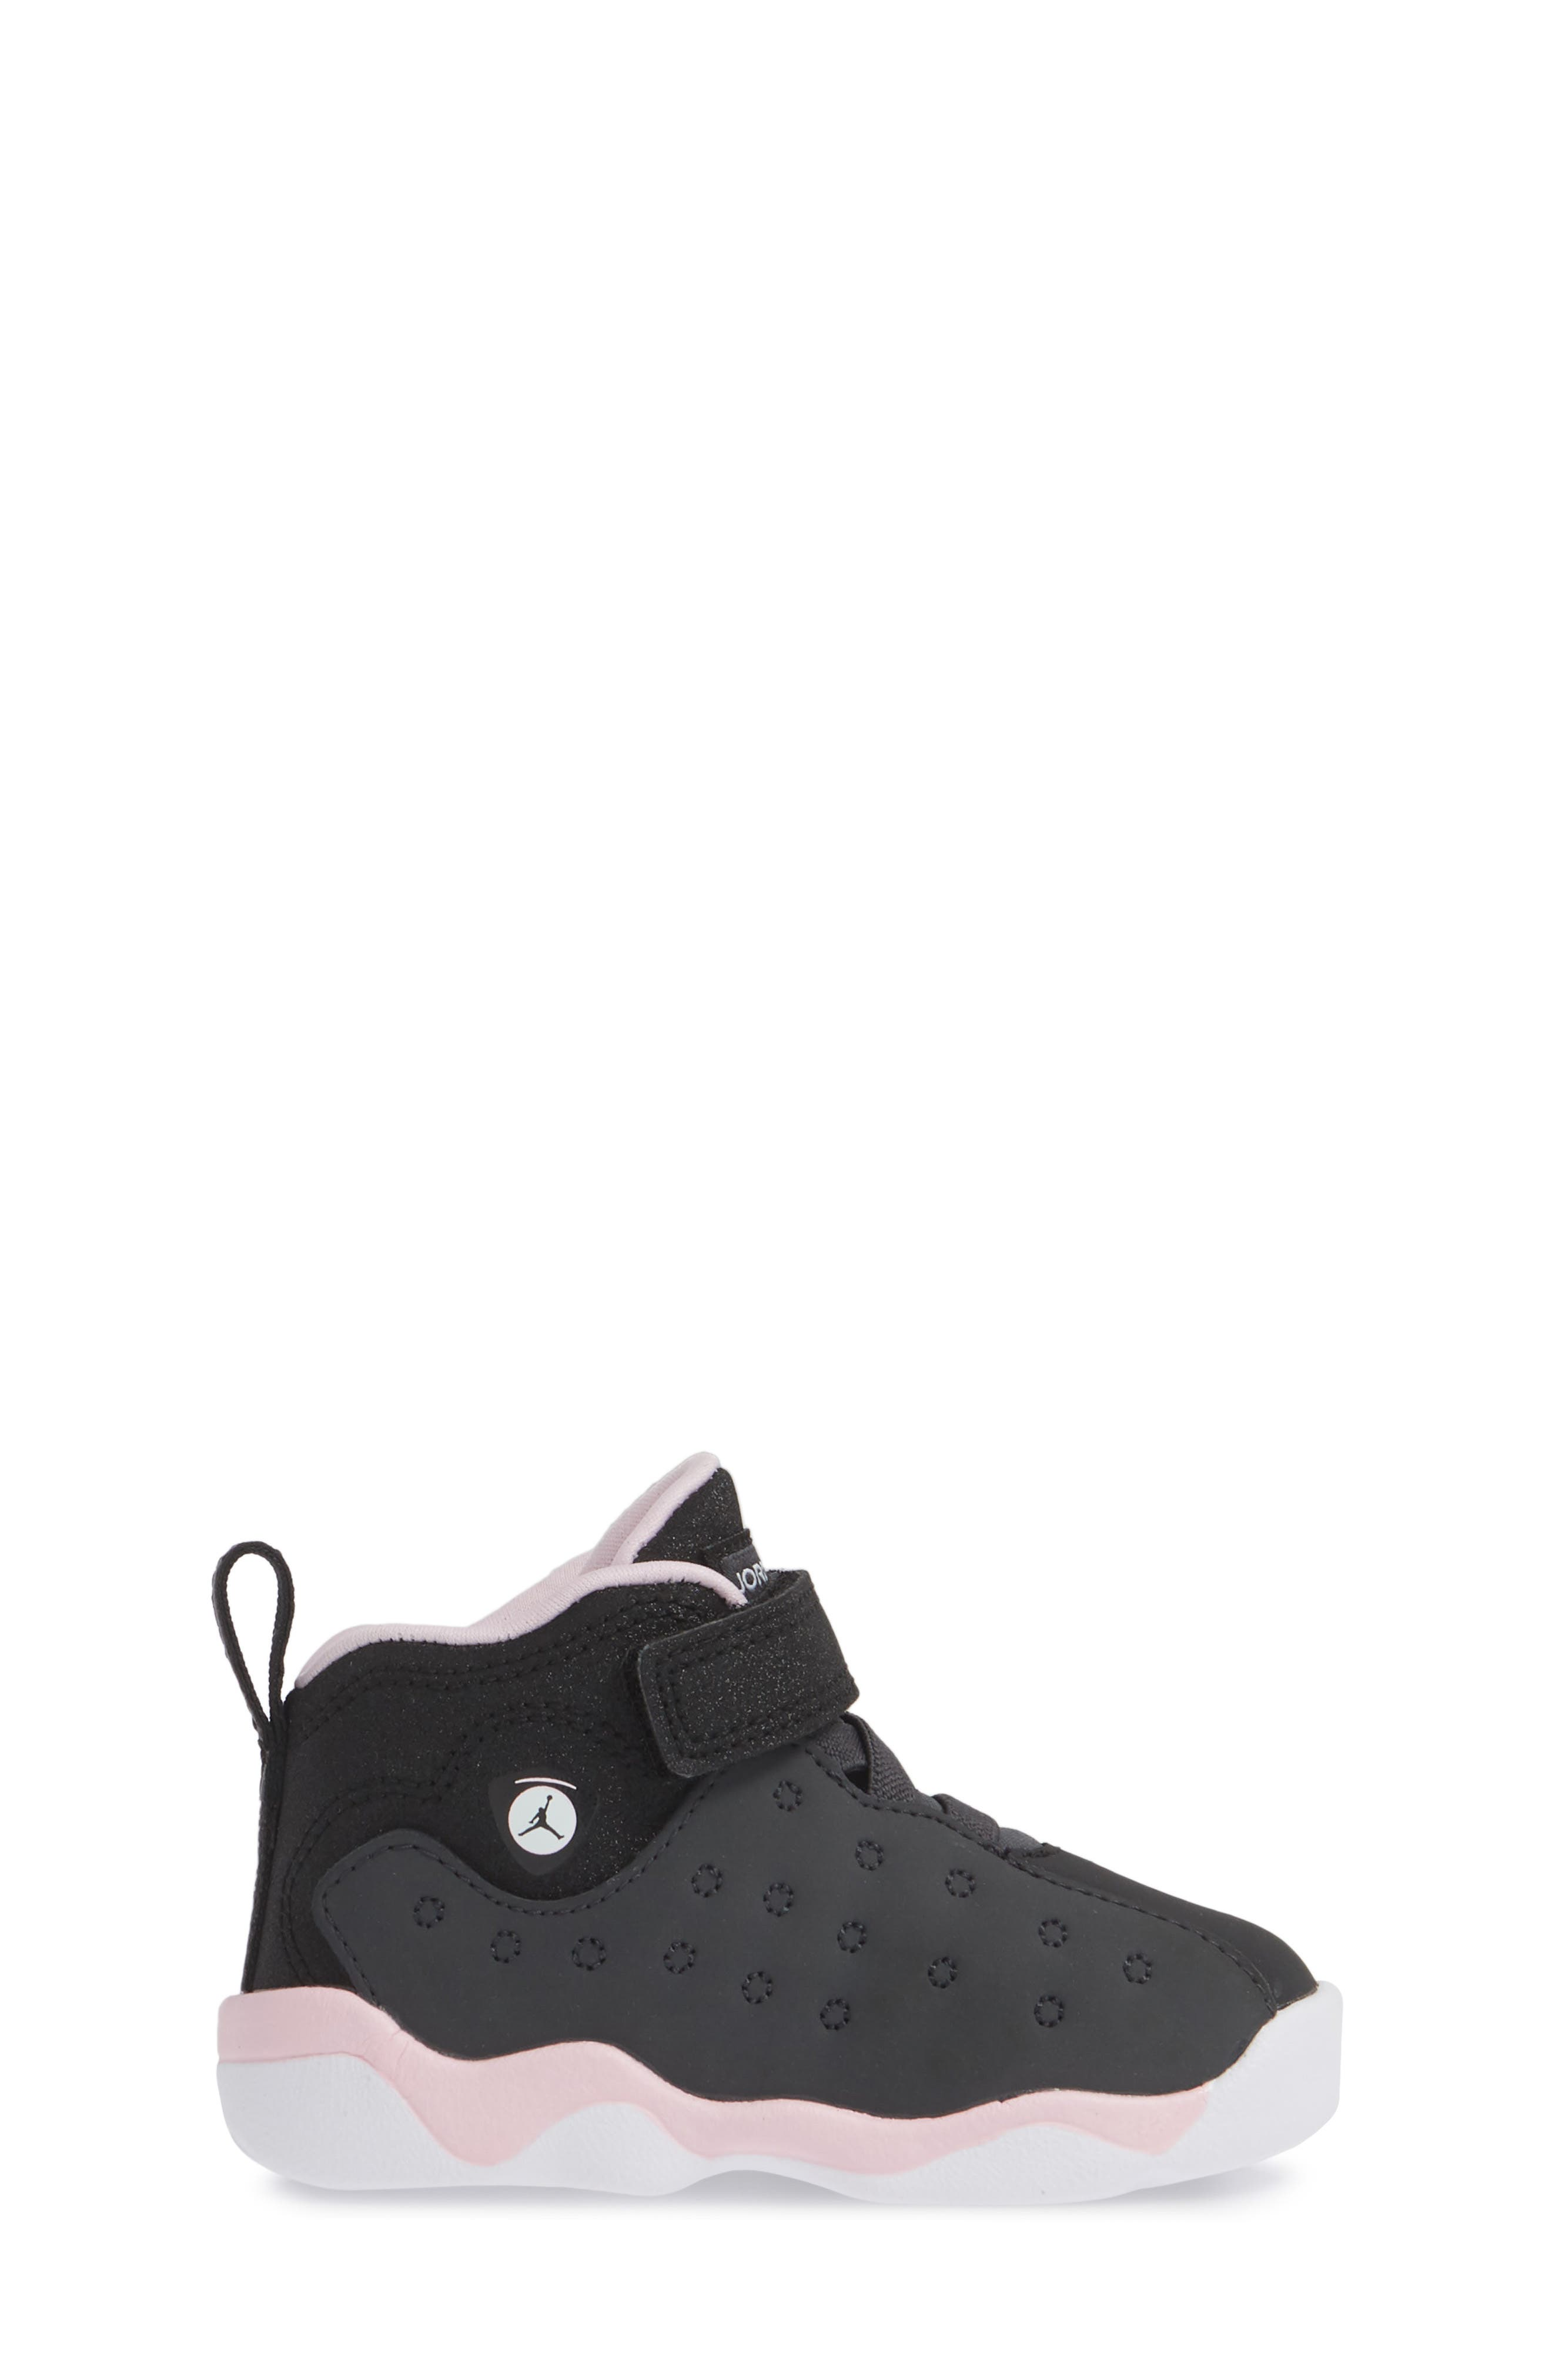 Jumpman Team II Sneaker,                             Alternate thumbnail 3, color,                             ANTHRACITE/ BLACK-PINK -WHITE